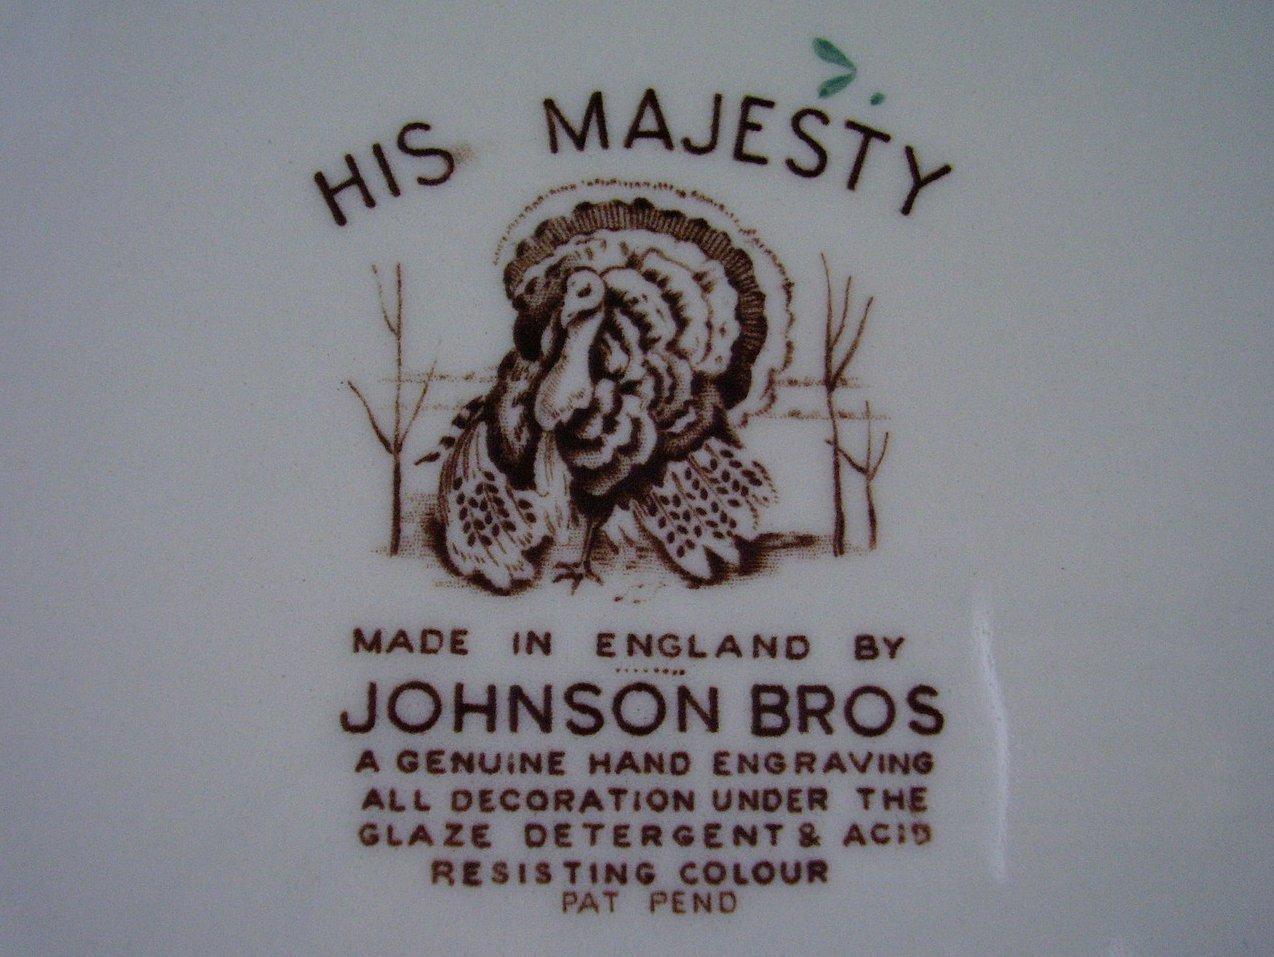 Johnson Bros His Majesty Plate